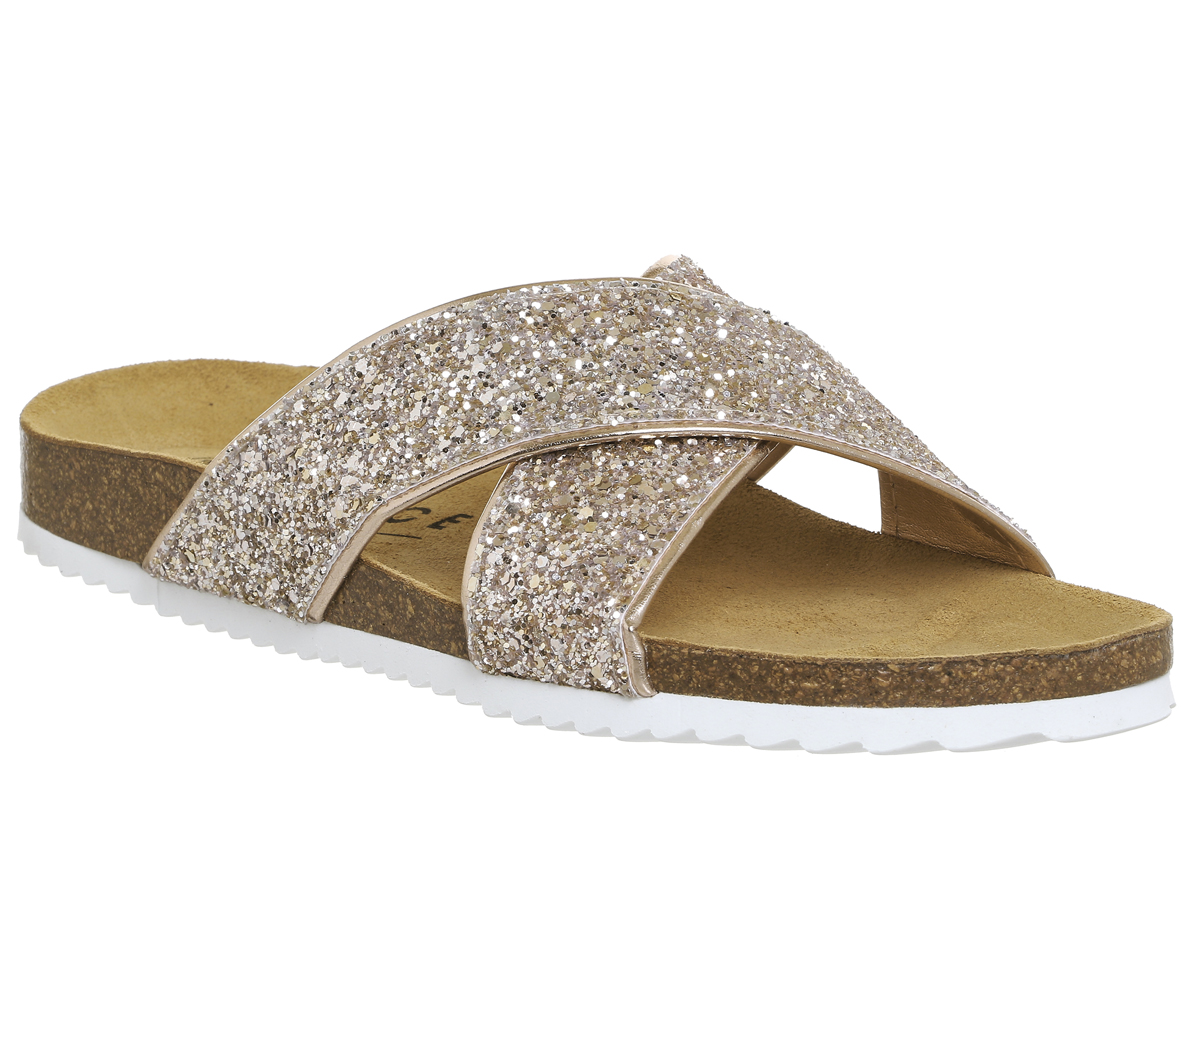 7217ae8e1c75 Womens Office Hoxton 2 Sandals ROSE GOLD GLITTER Sandals